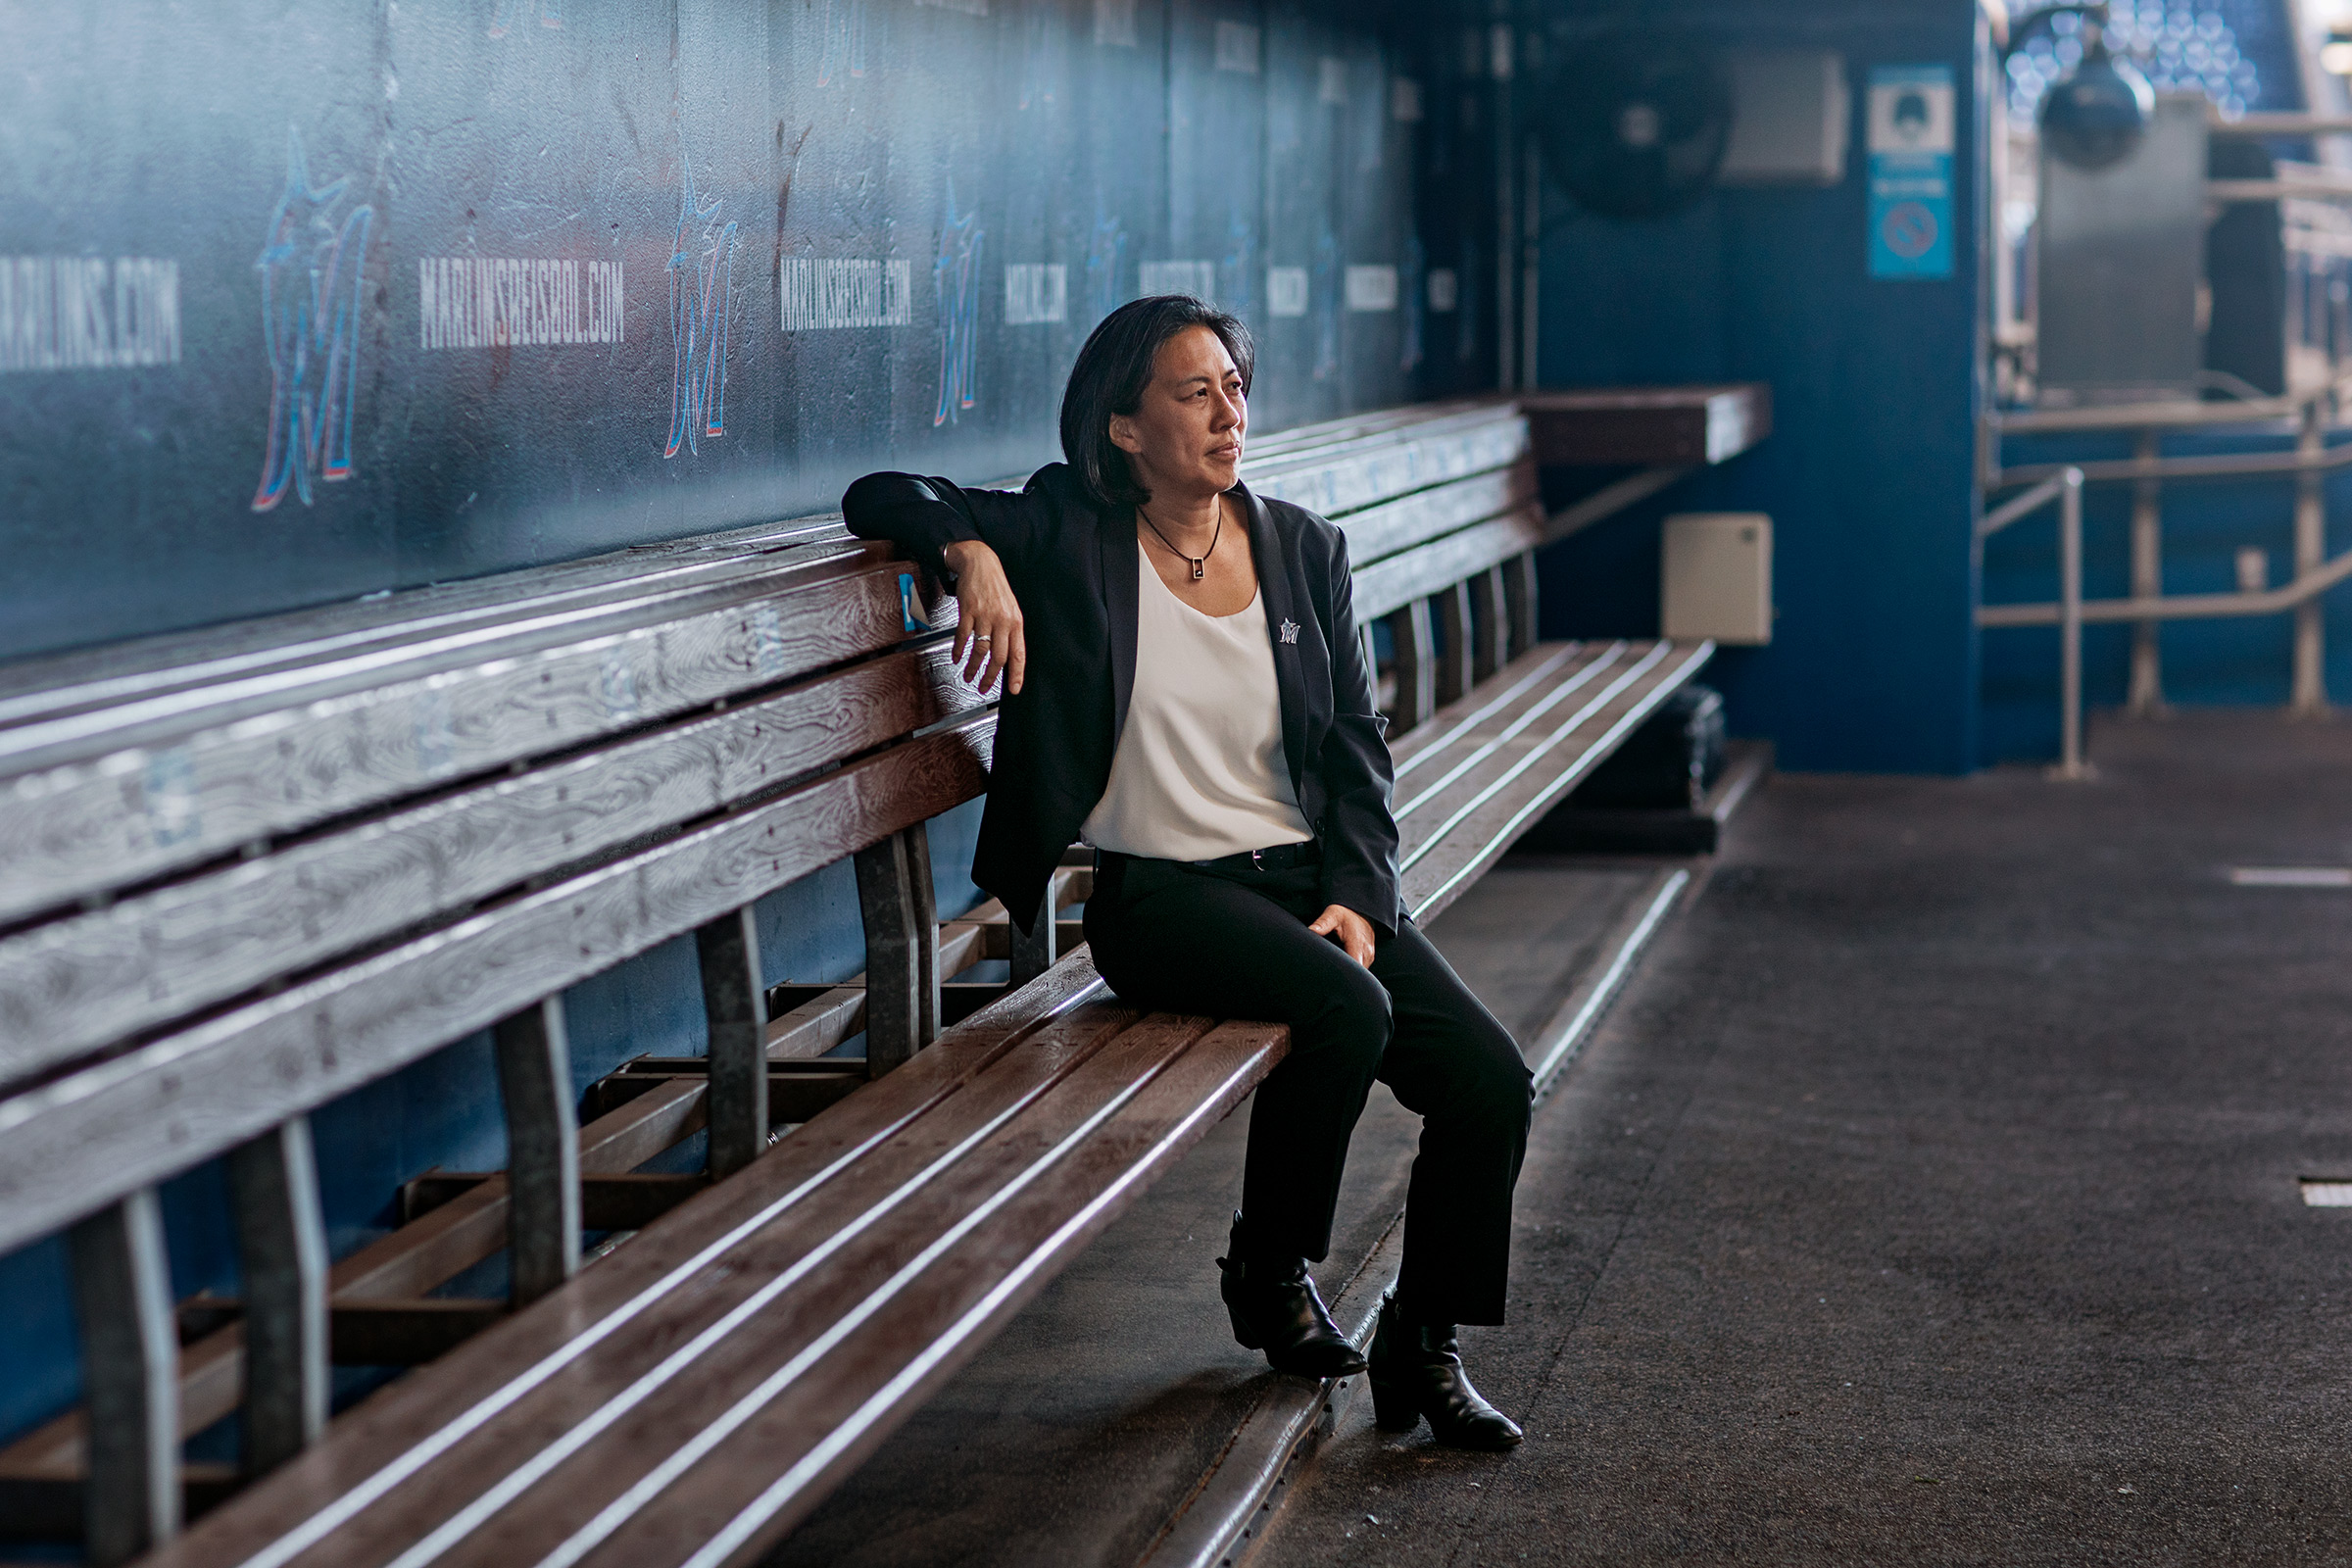 Kim Ng in the dugout of Marlins Park in Miami on Feb. 9